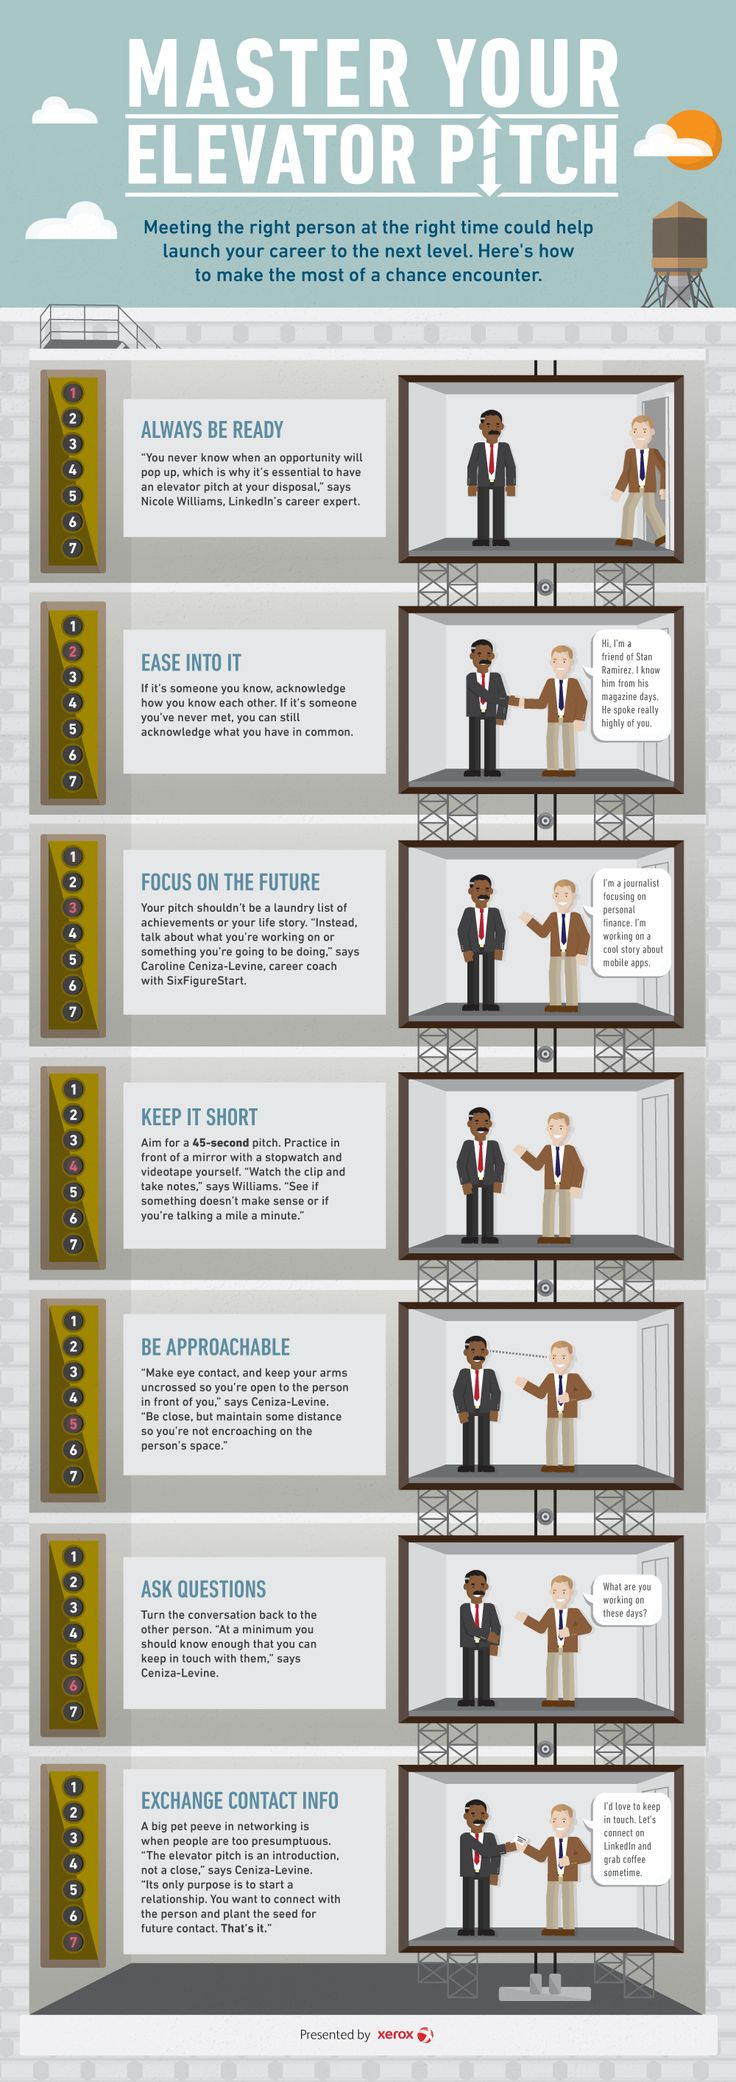 Master Your Elevator Pitch #careers #networking #interviews